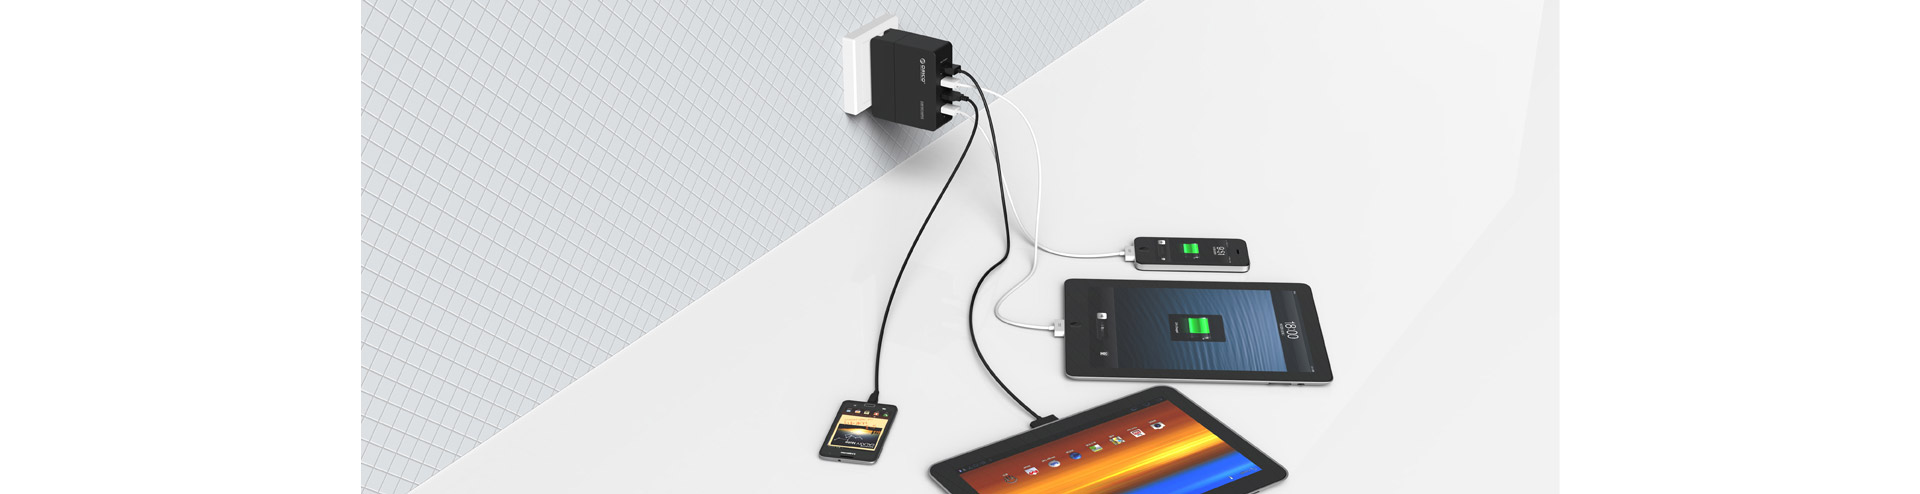 Charges four devices at the same time